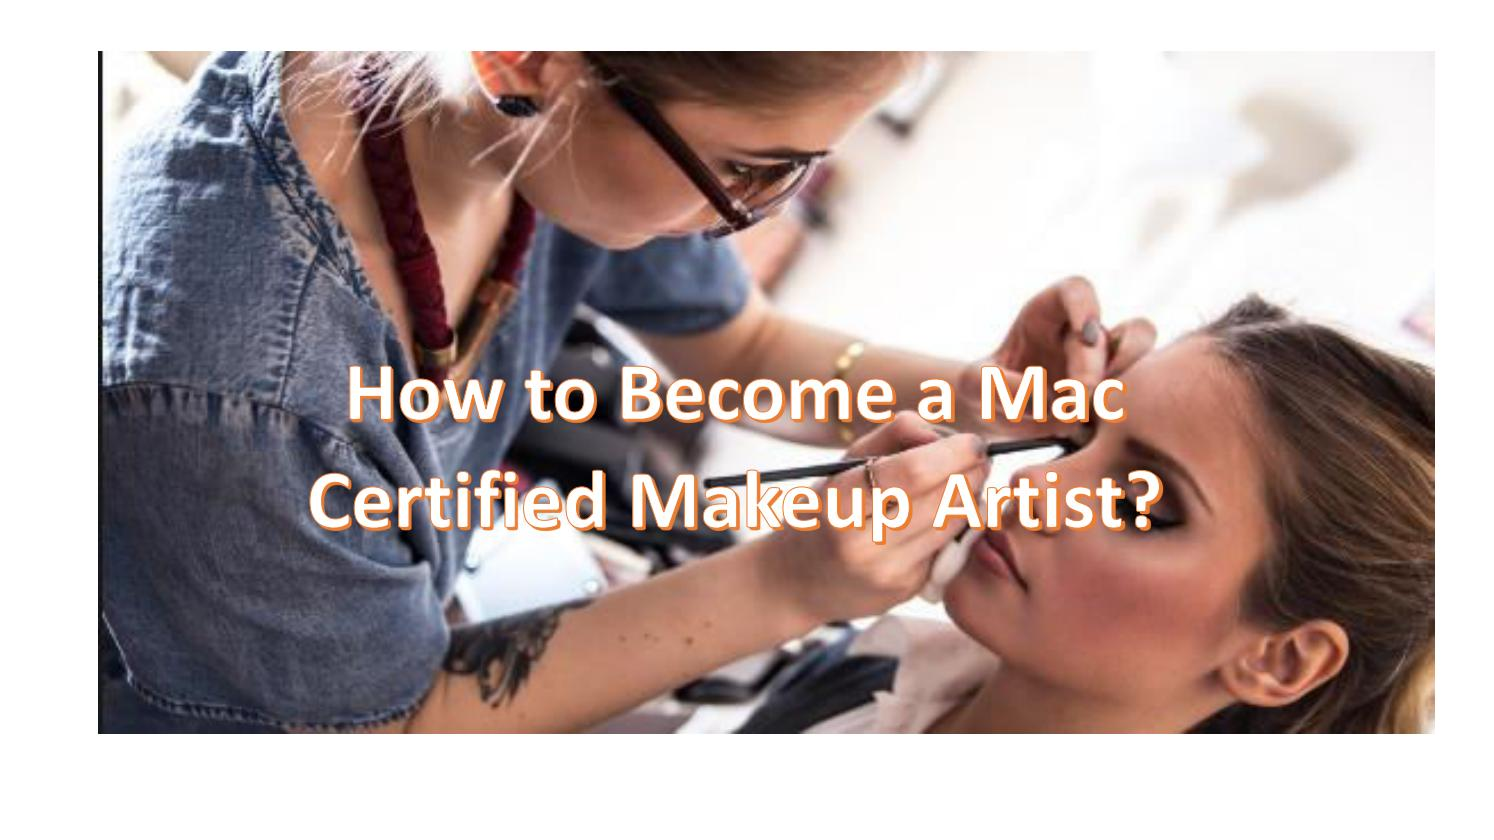 Mac Certified Makeup Artist